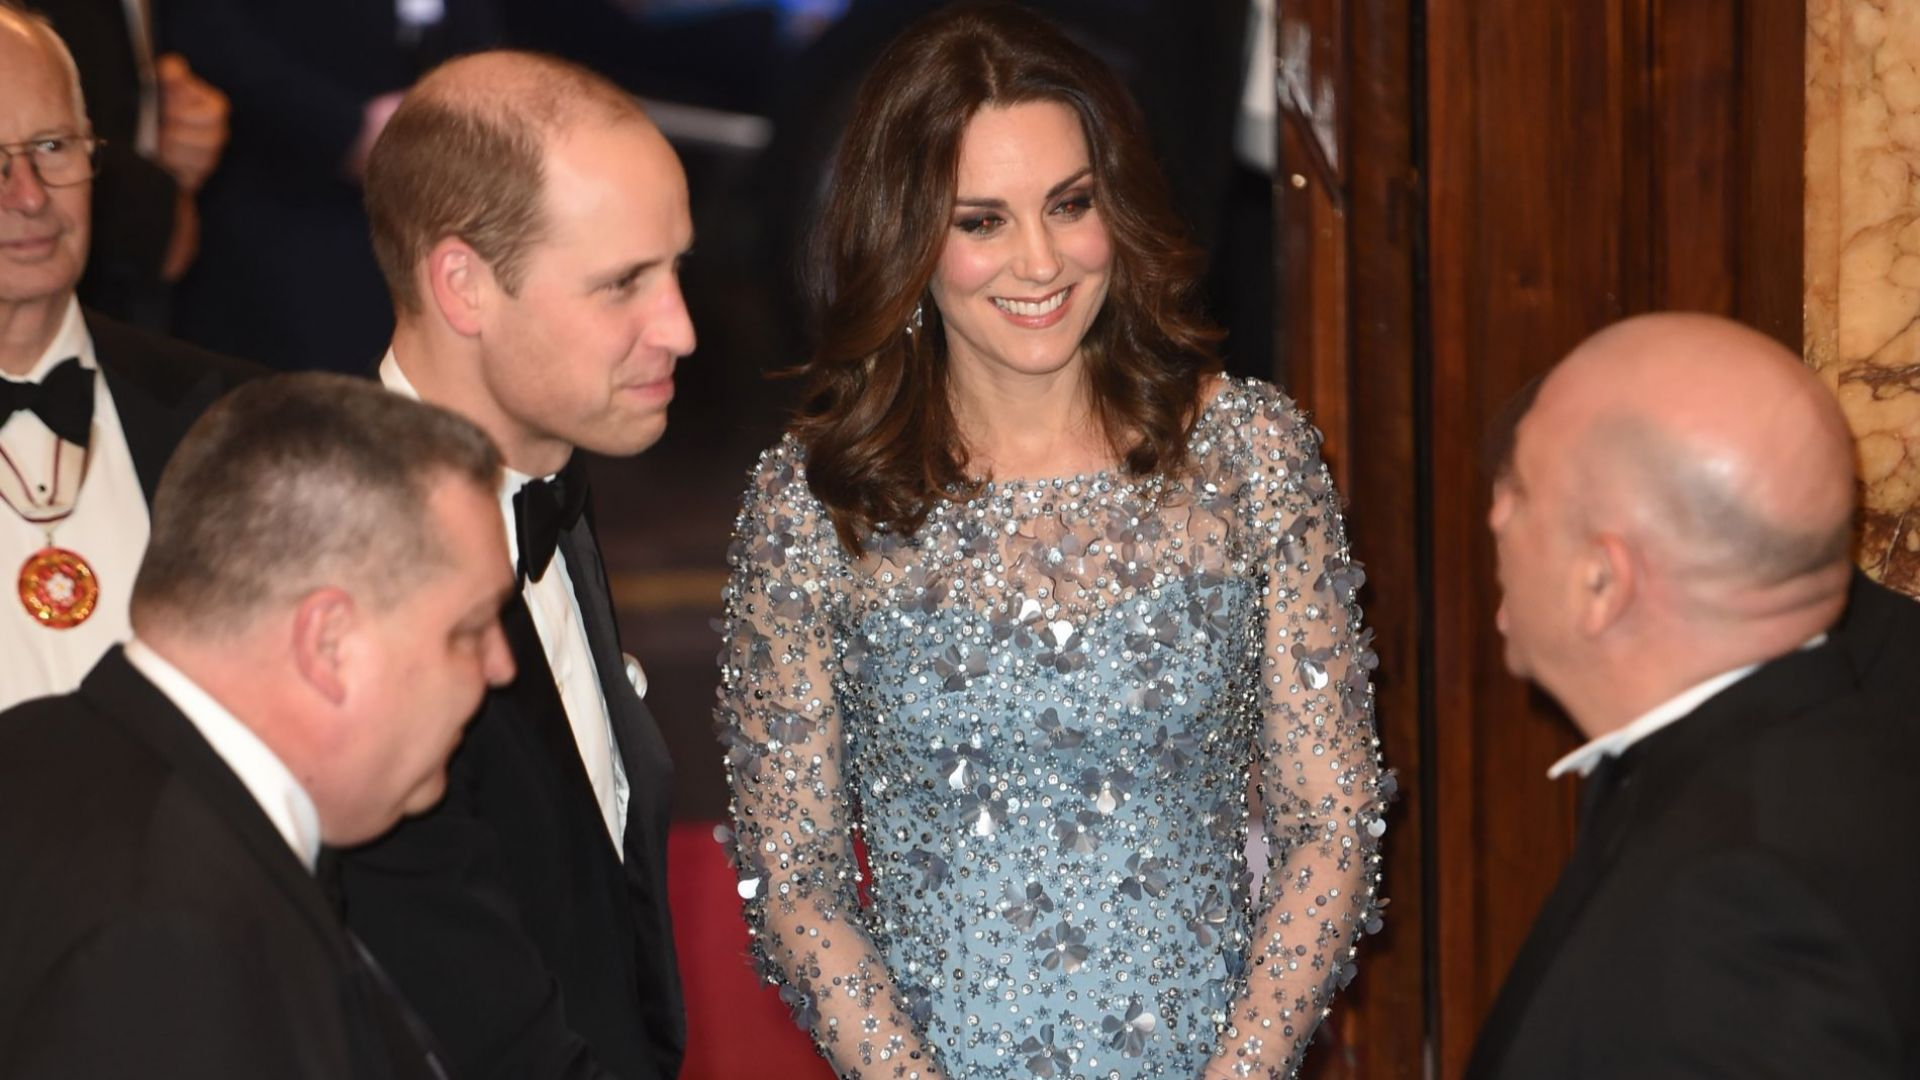 7. Катрин в Jenny Packham на Royal variety performance